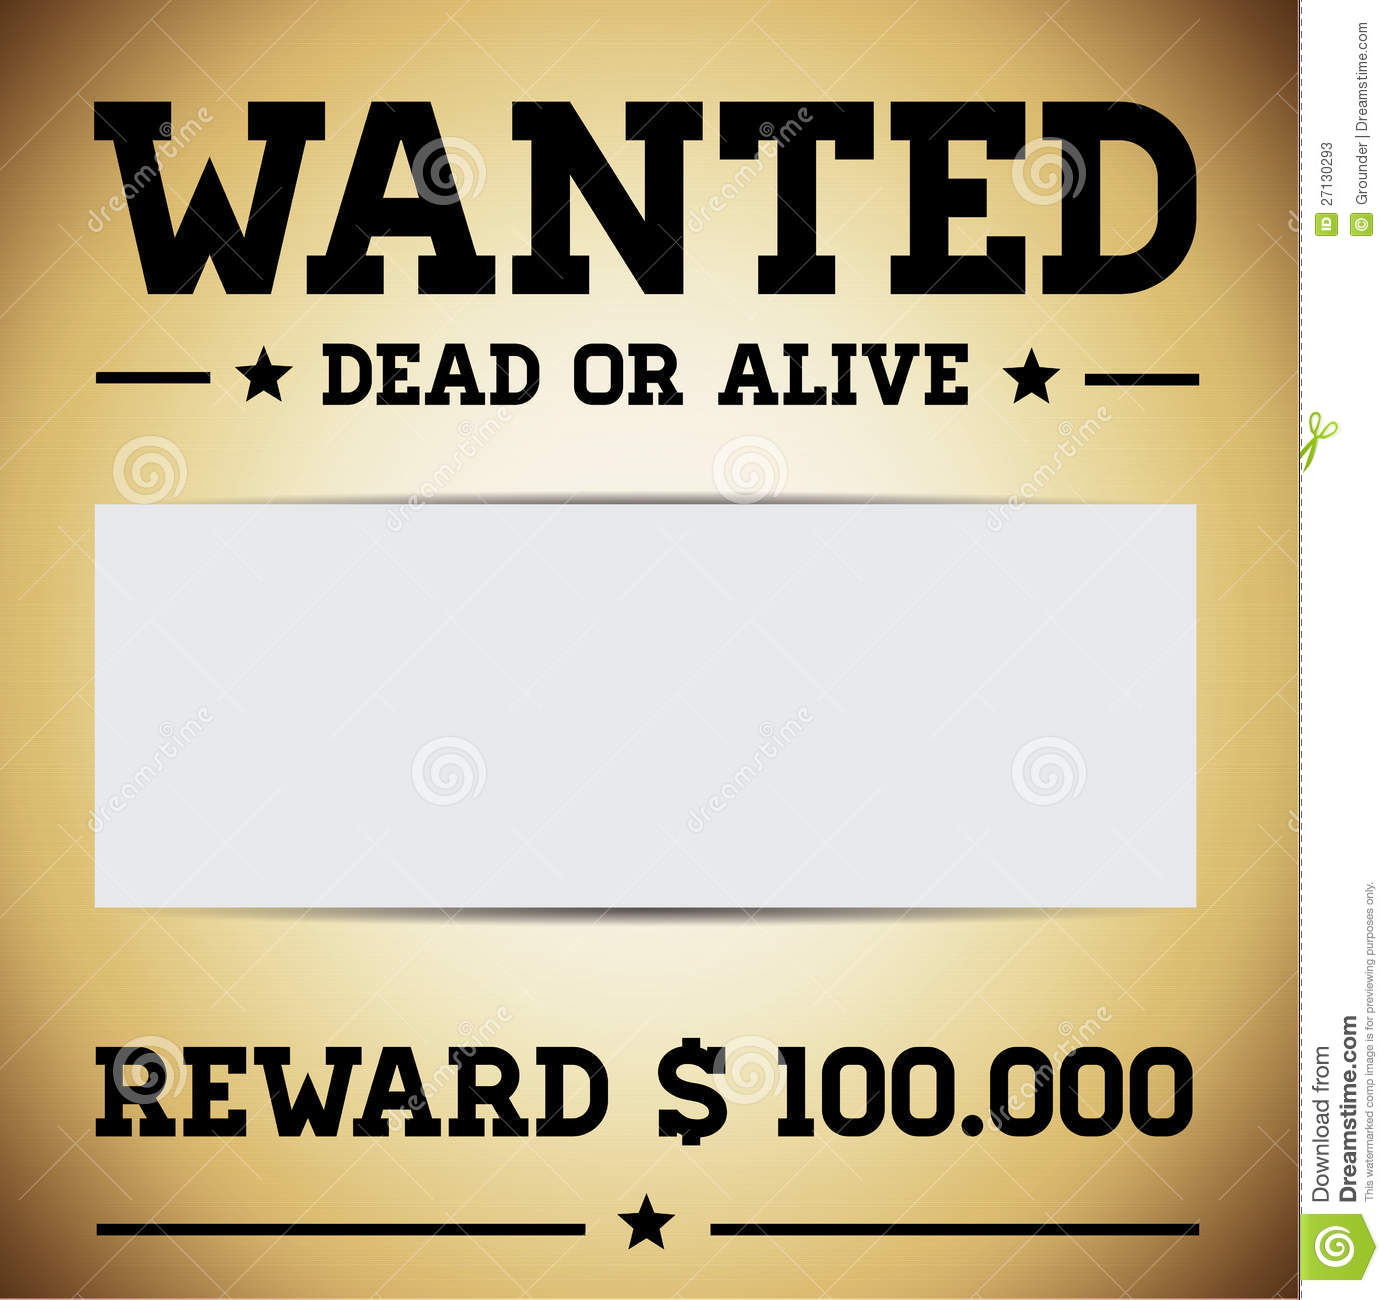 Wanted Dead Or Alive Template Vector Stock Photos - Image: 27130293